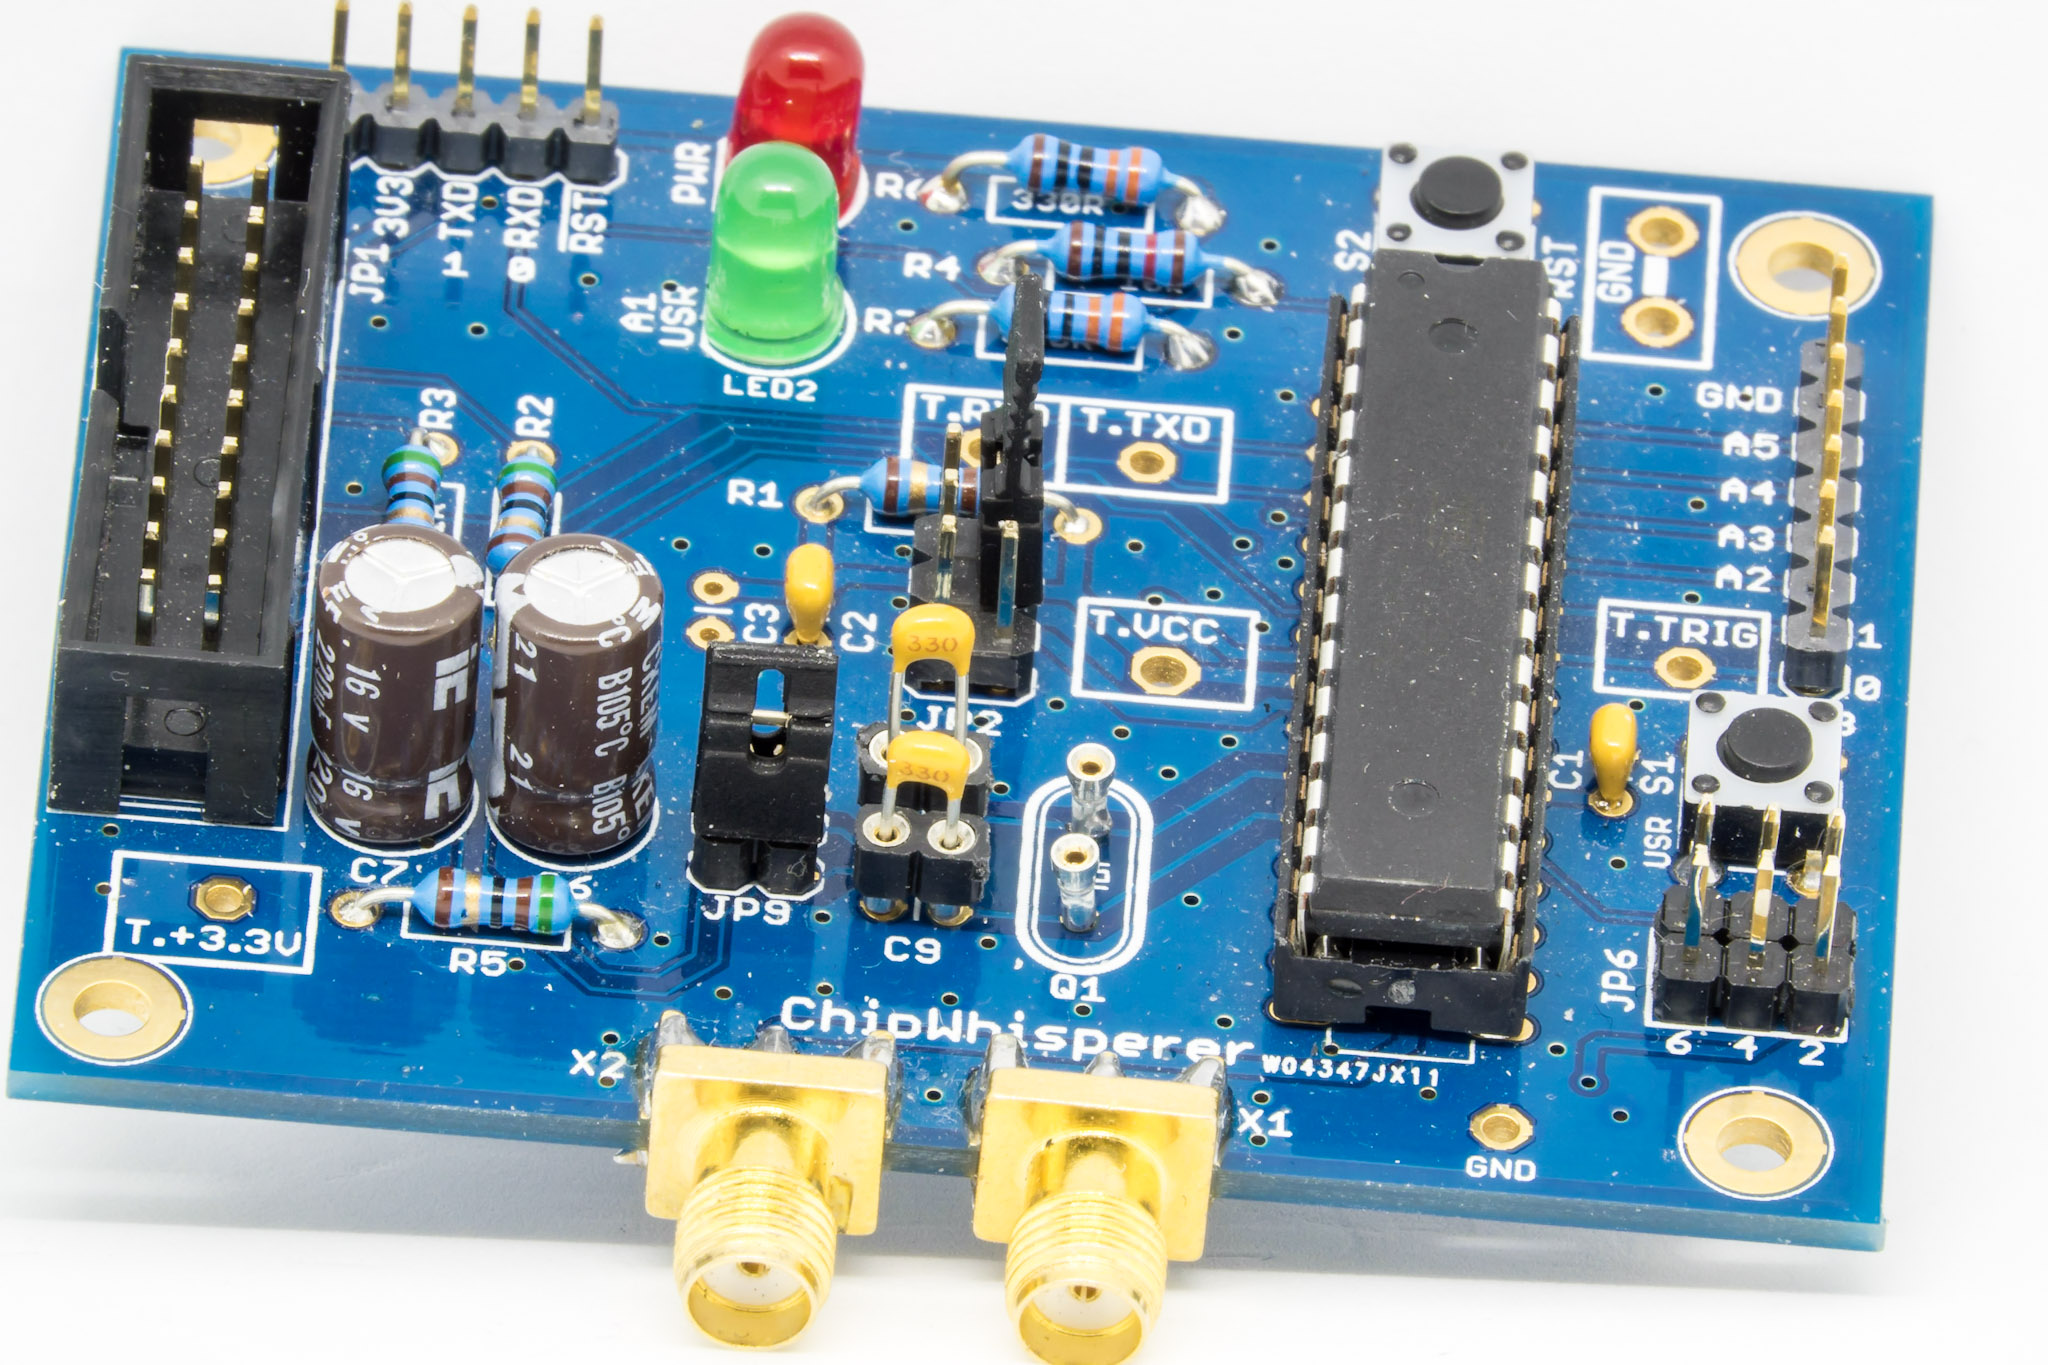 NOTDUINO board with extra headers for a crystal and associated capacitors